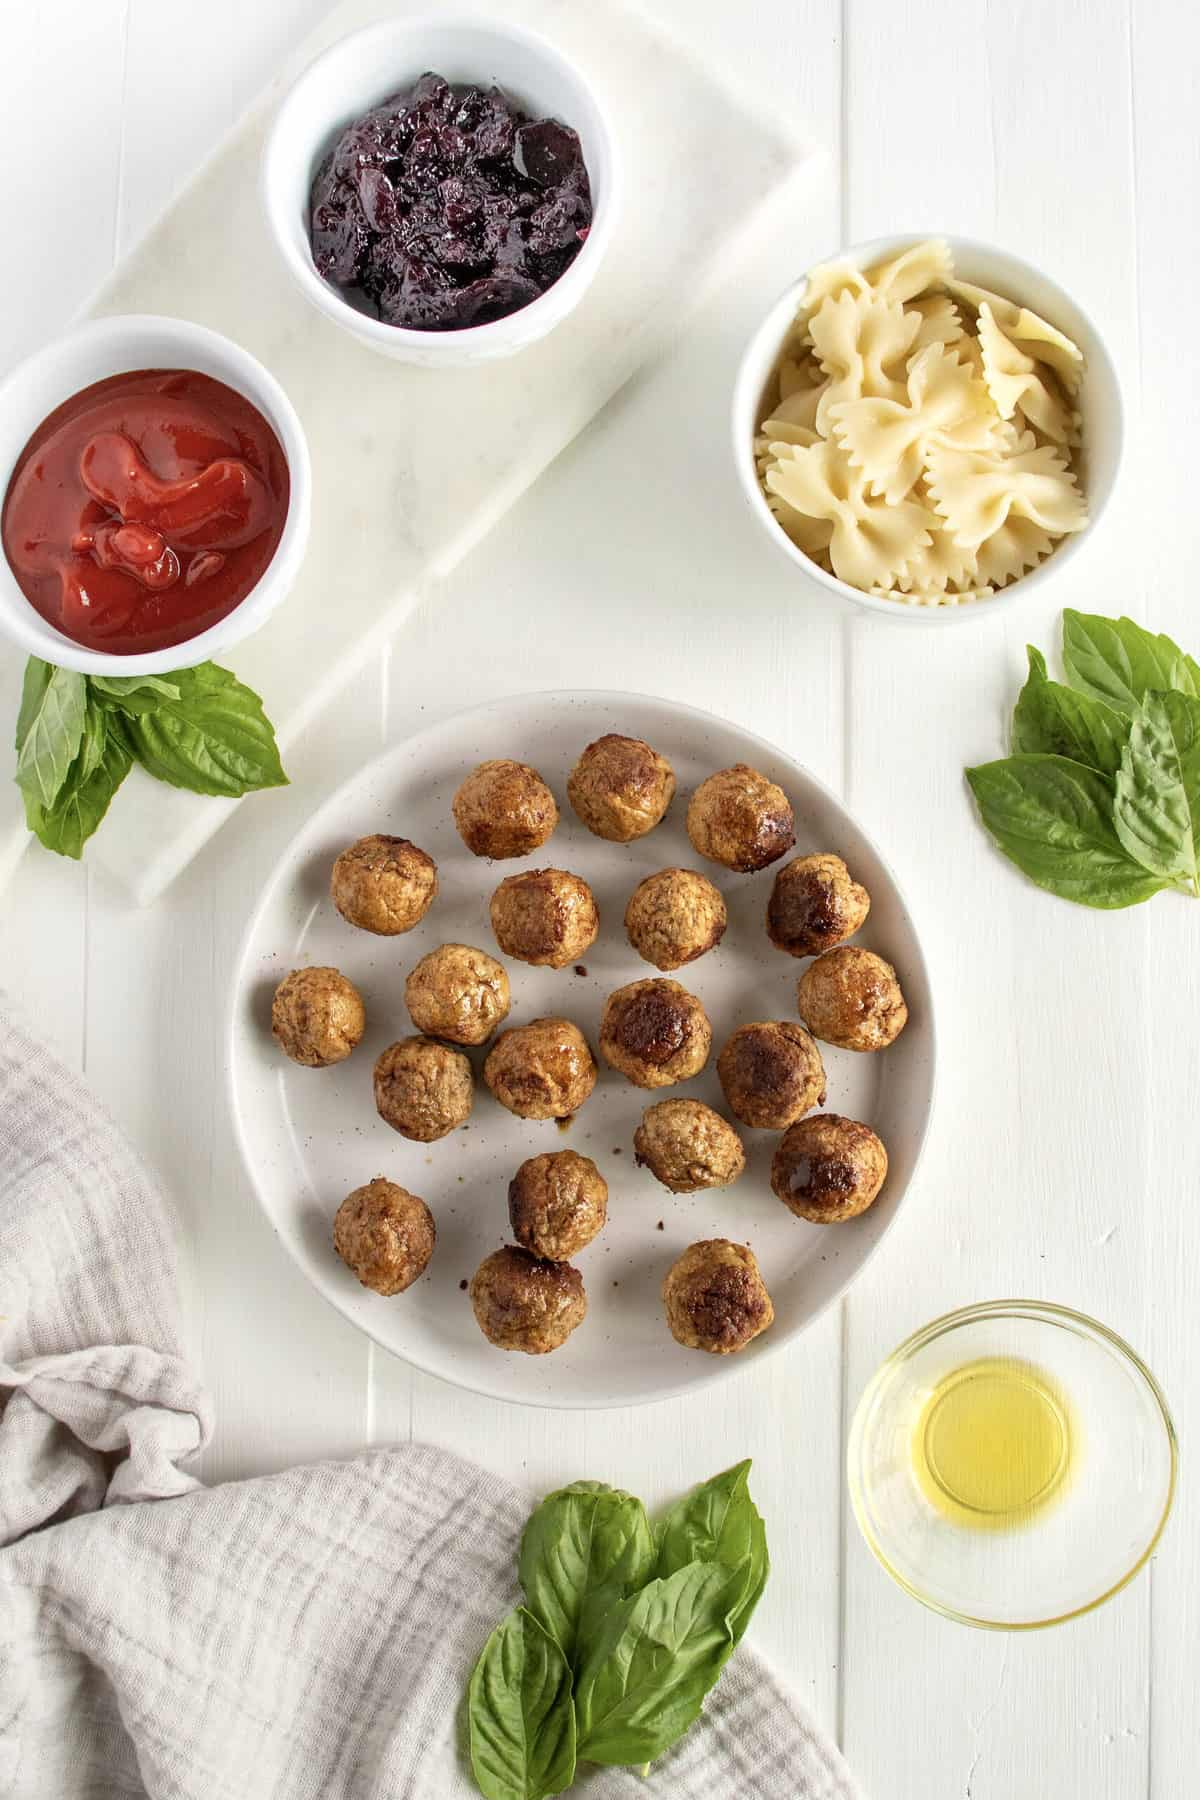 Bowtie Pasta and Cocktail Meatball Skewers by The BakerMama